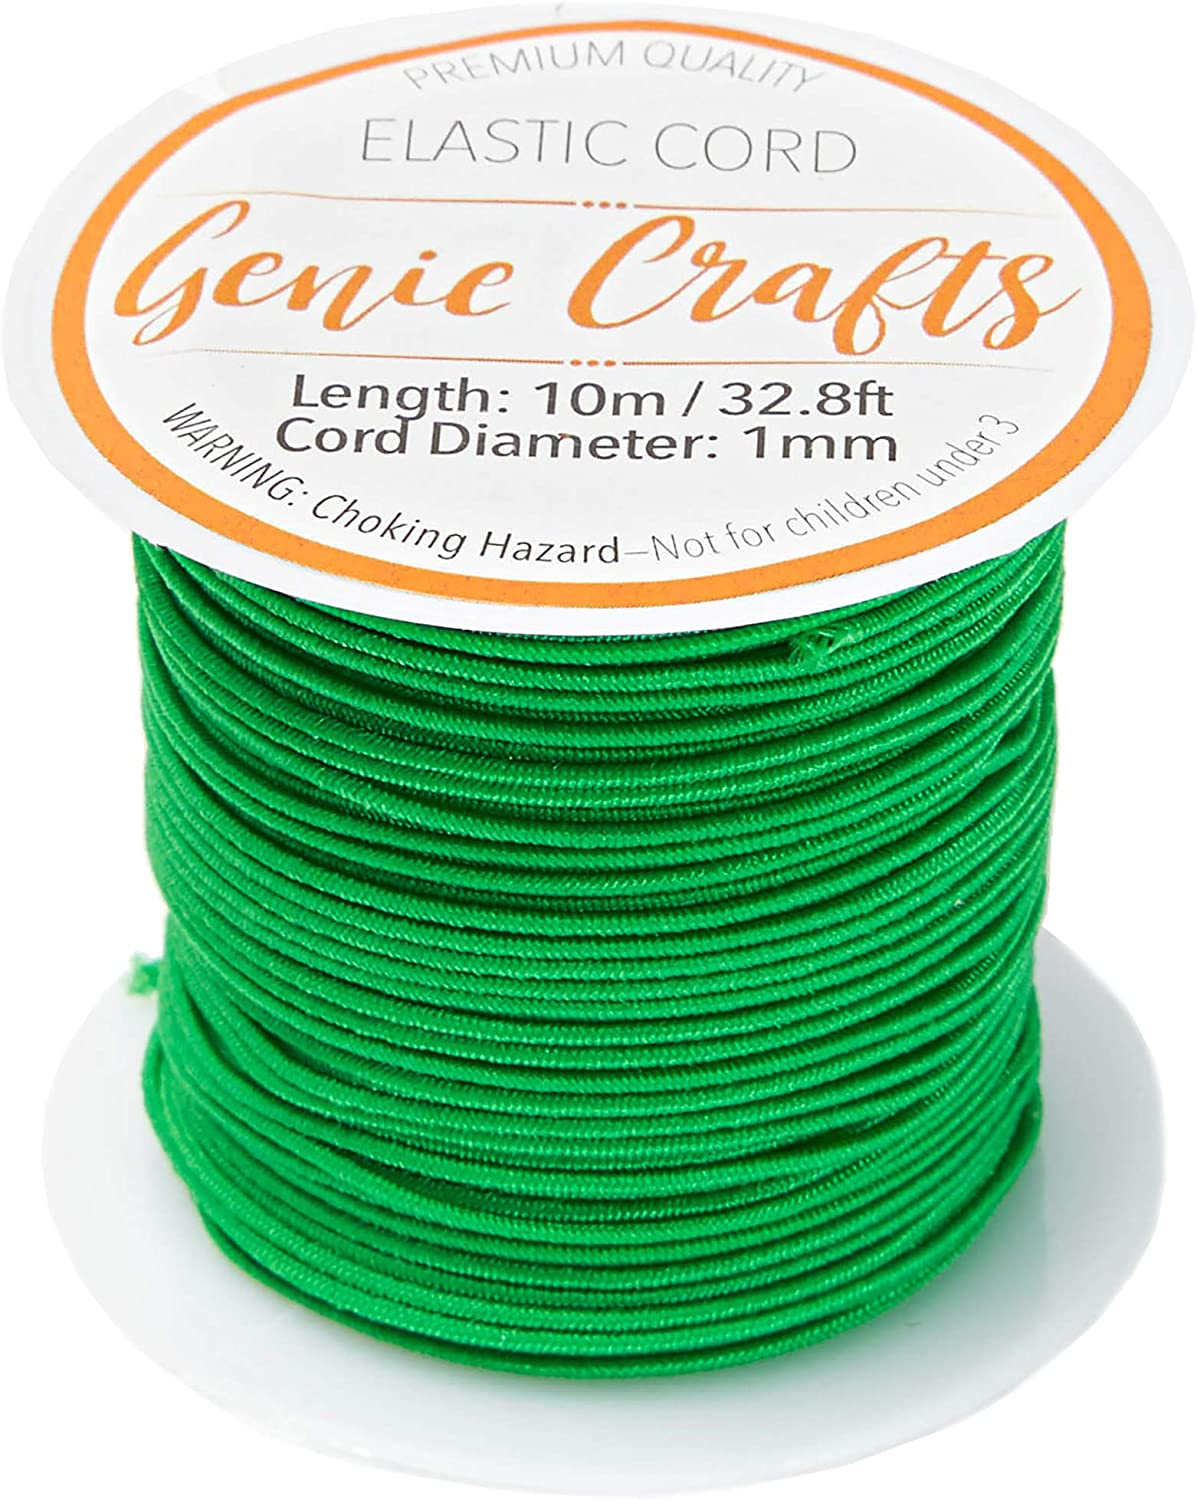 Beading Cords & Threads 12 Colors 24 Pack Genie Crafts 1mm Elastic ...